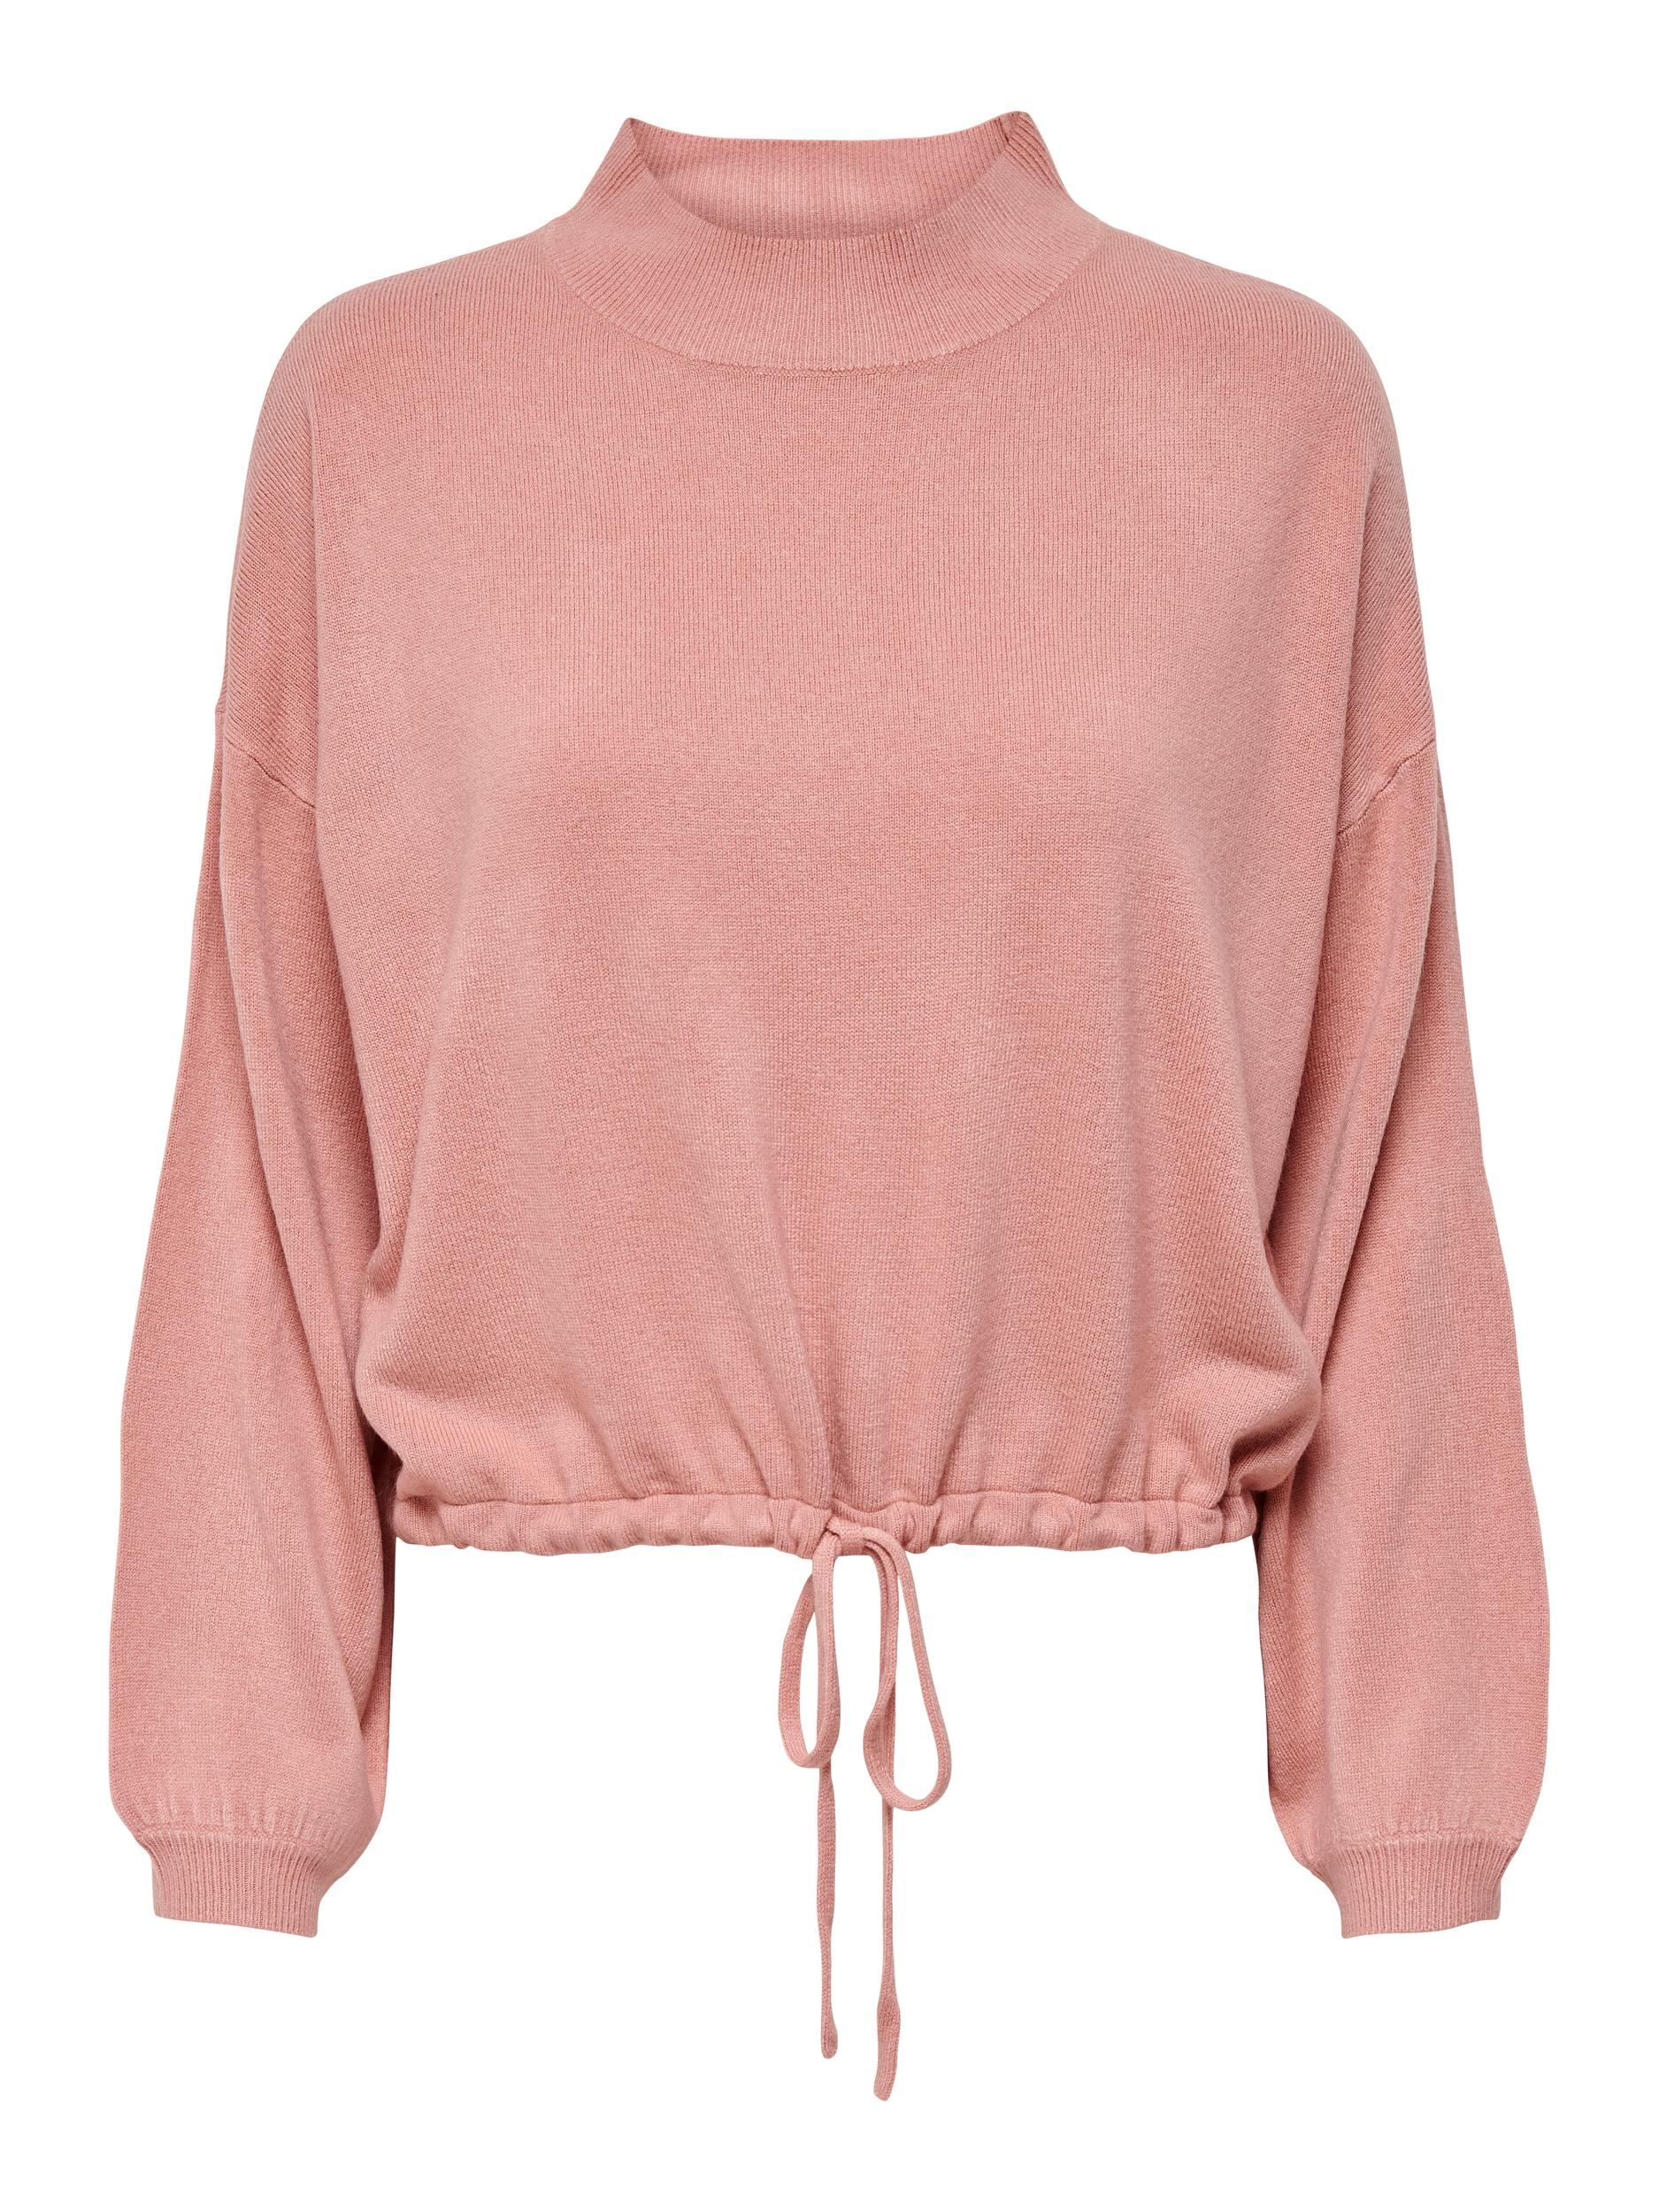 ONLY Sweater Amalia in 3 Farben